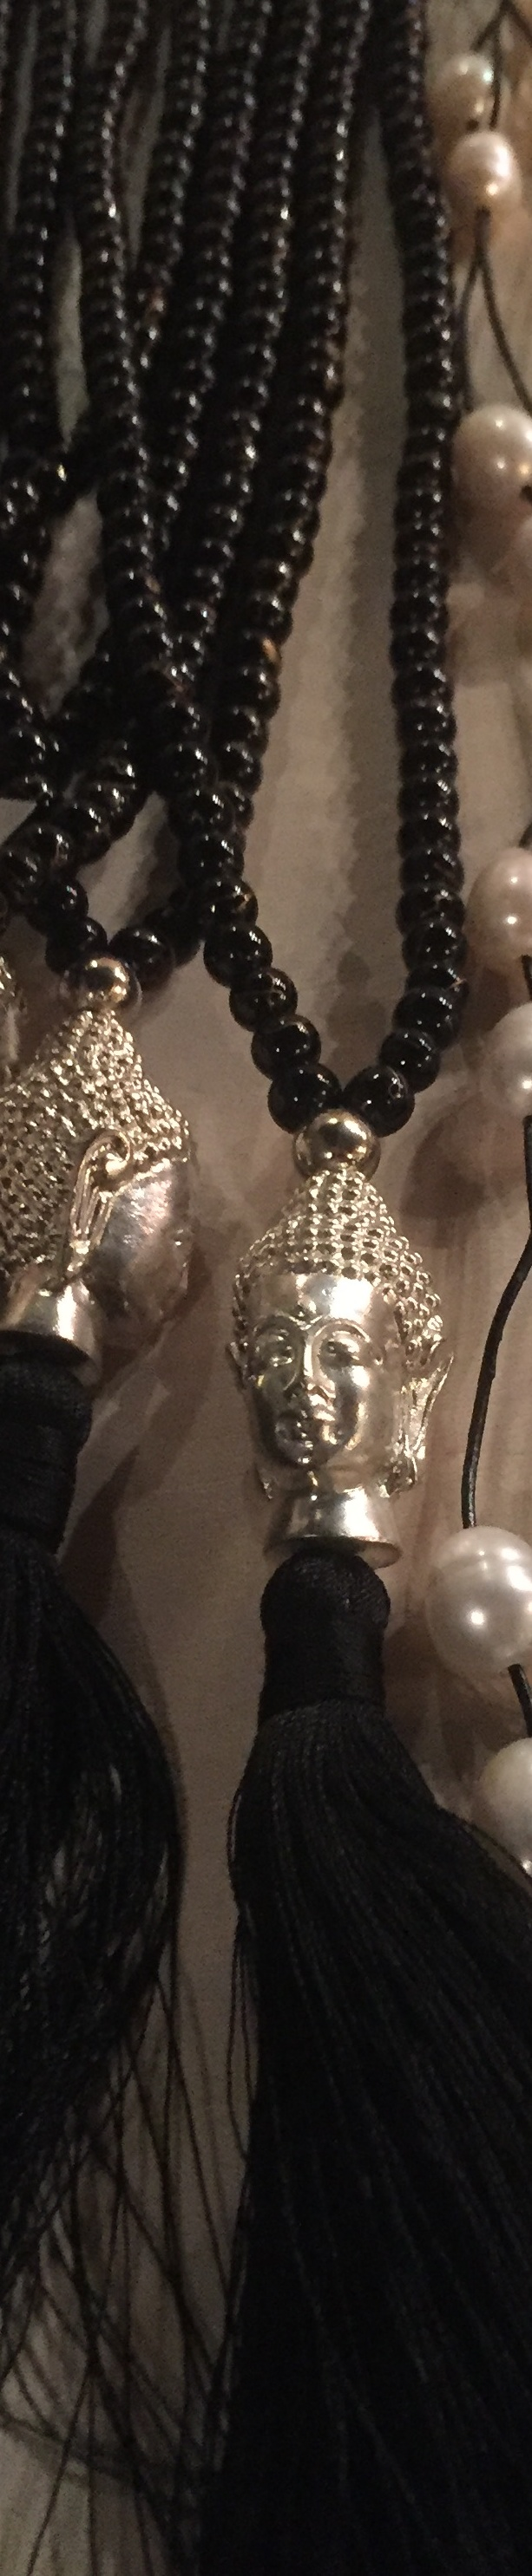 lucky-buddha-bead + tassle-necklace.jpg